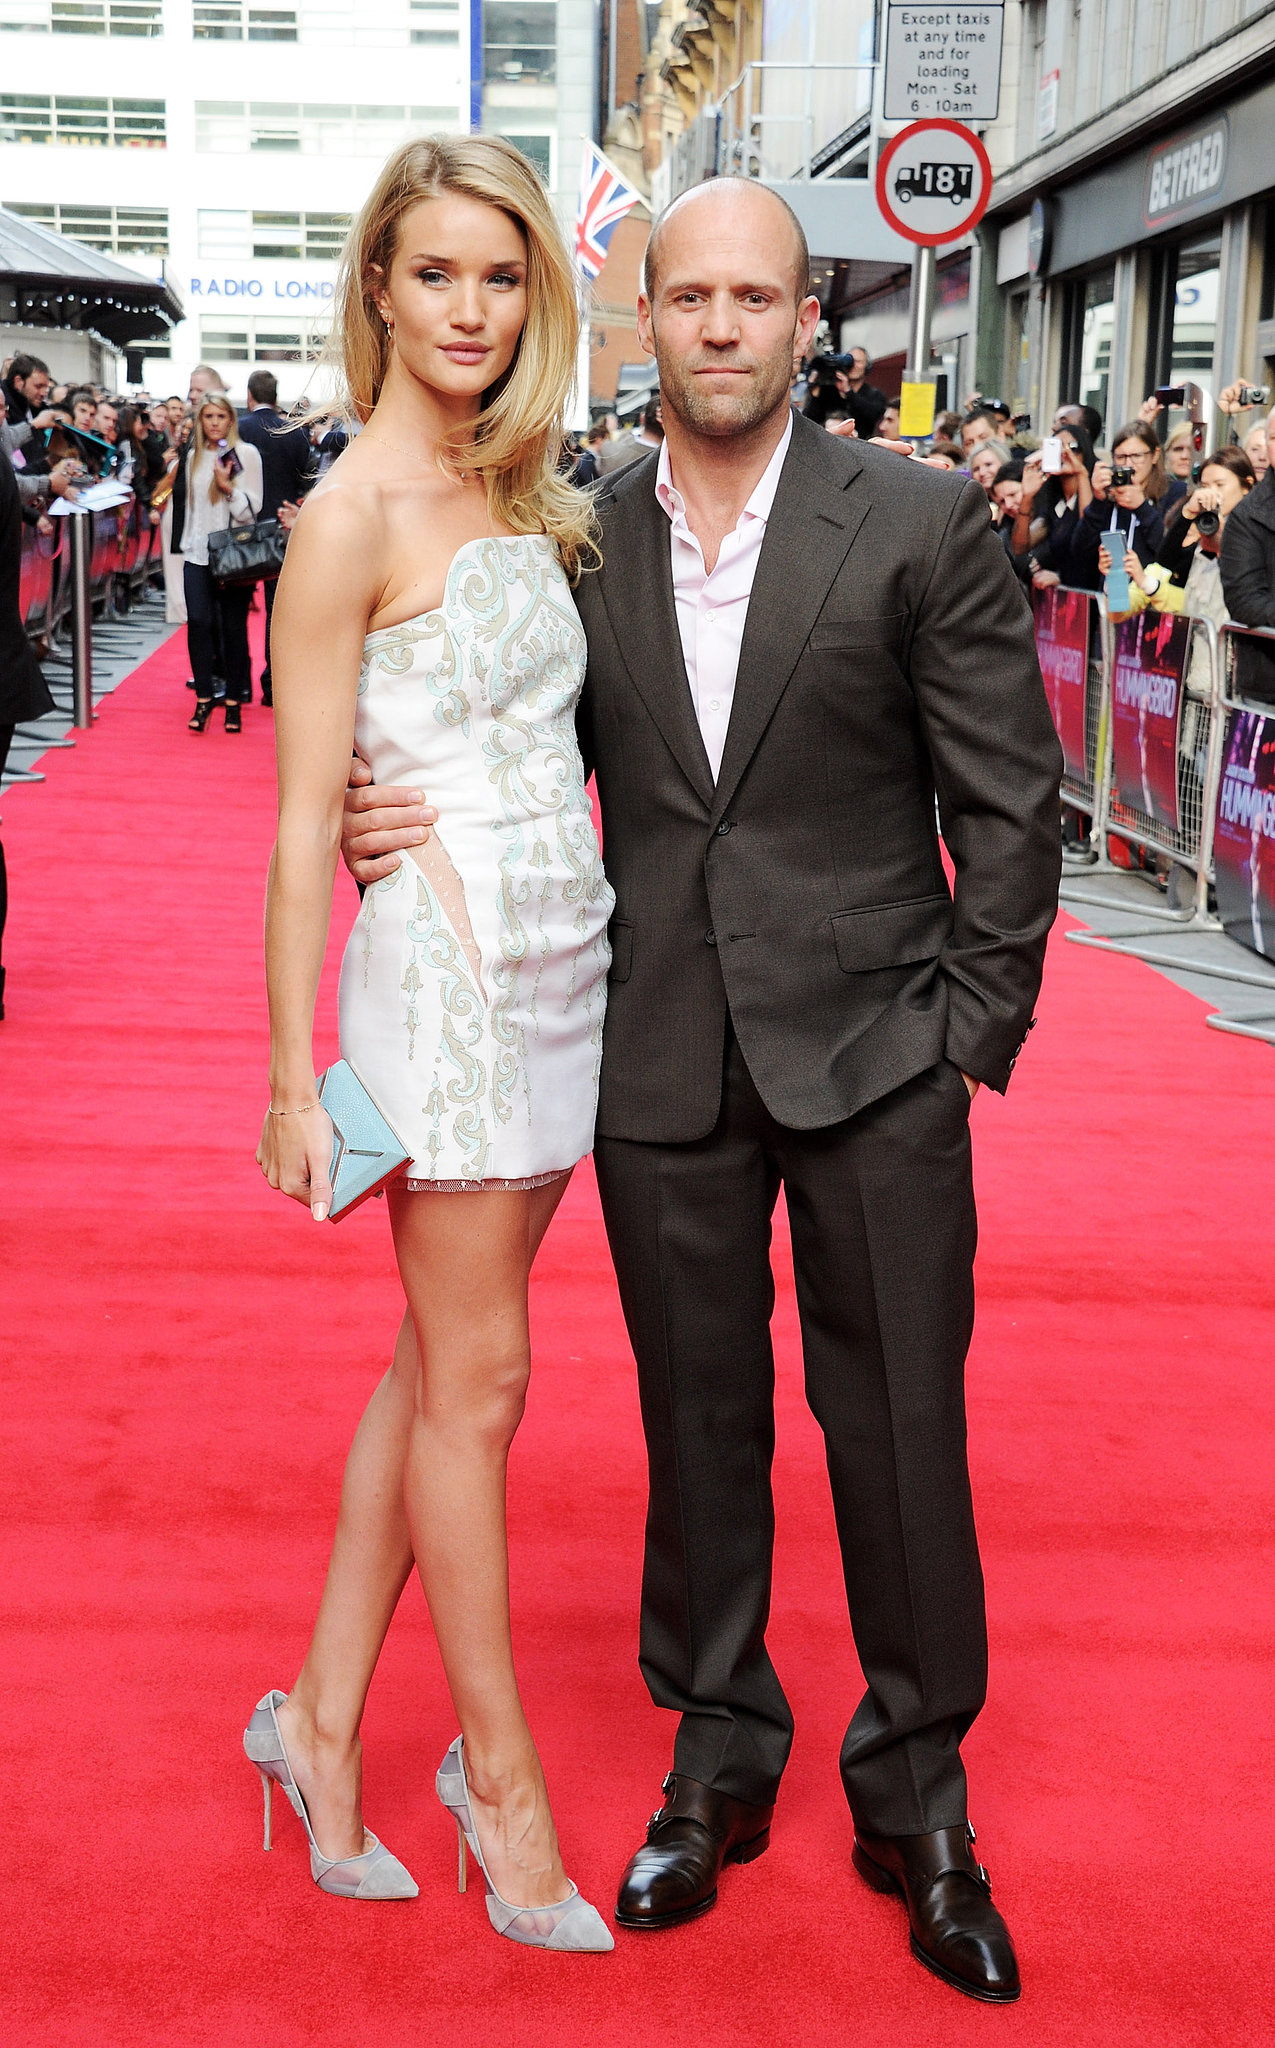 jason statham and rosie huntington whiteley relationship test